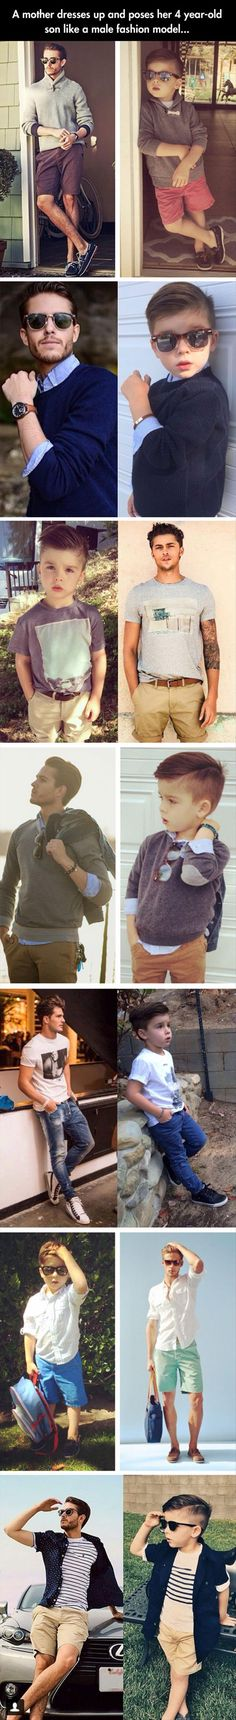 I CAN'T EVEN HANDLE HOW CUTE HE IS. .   @carmencrafter this made me think of your adorable boys!